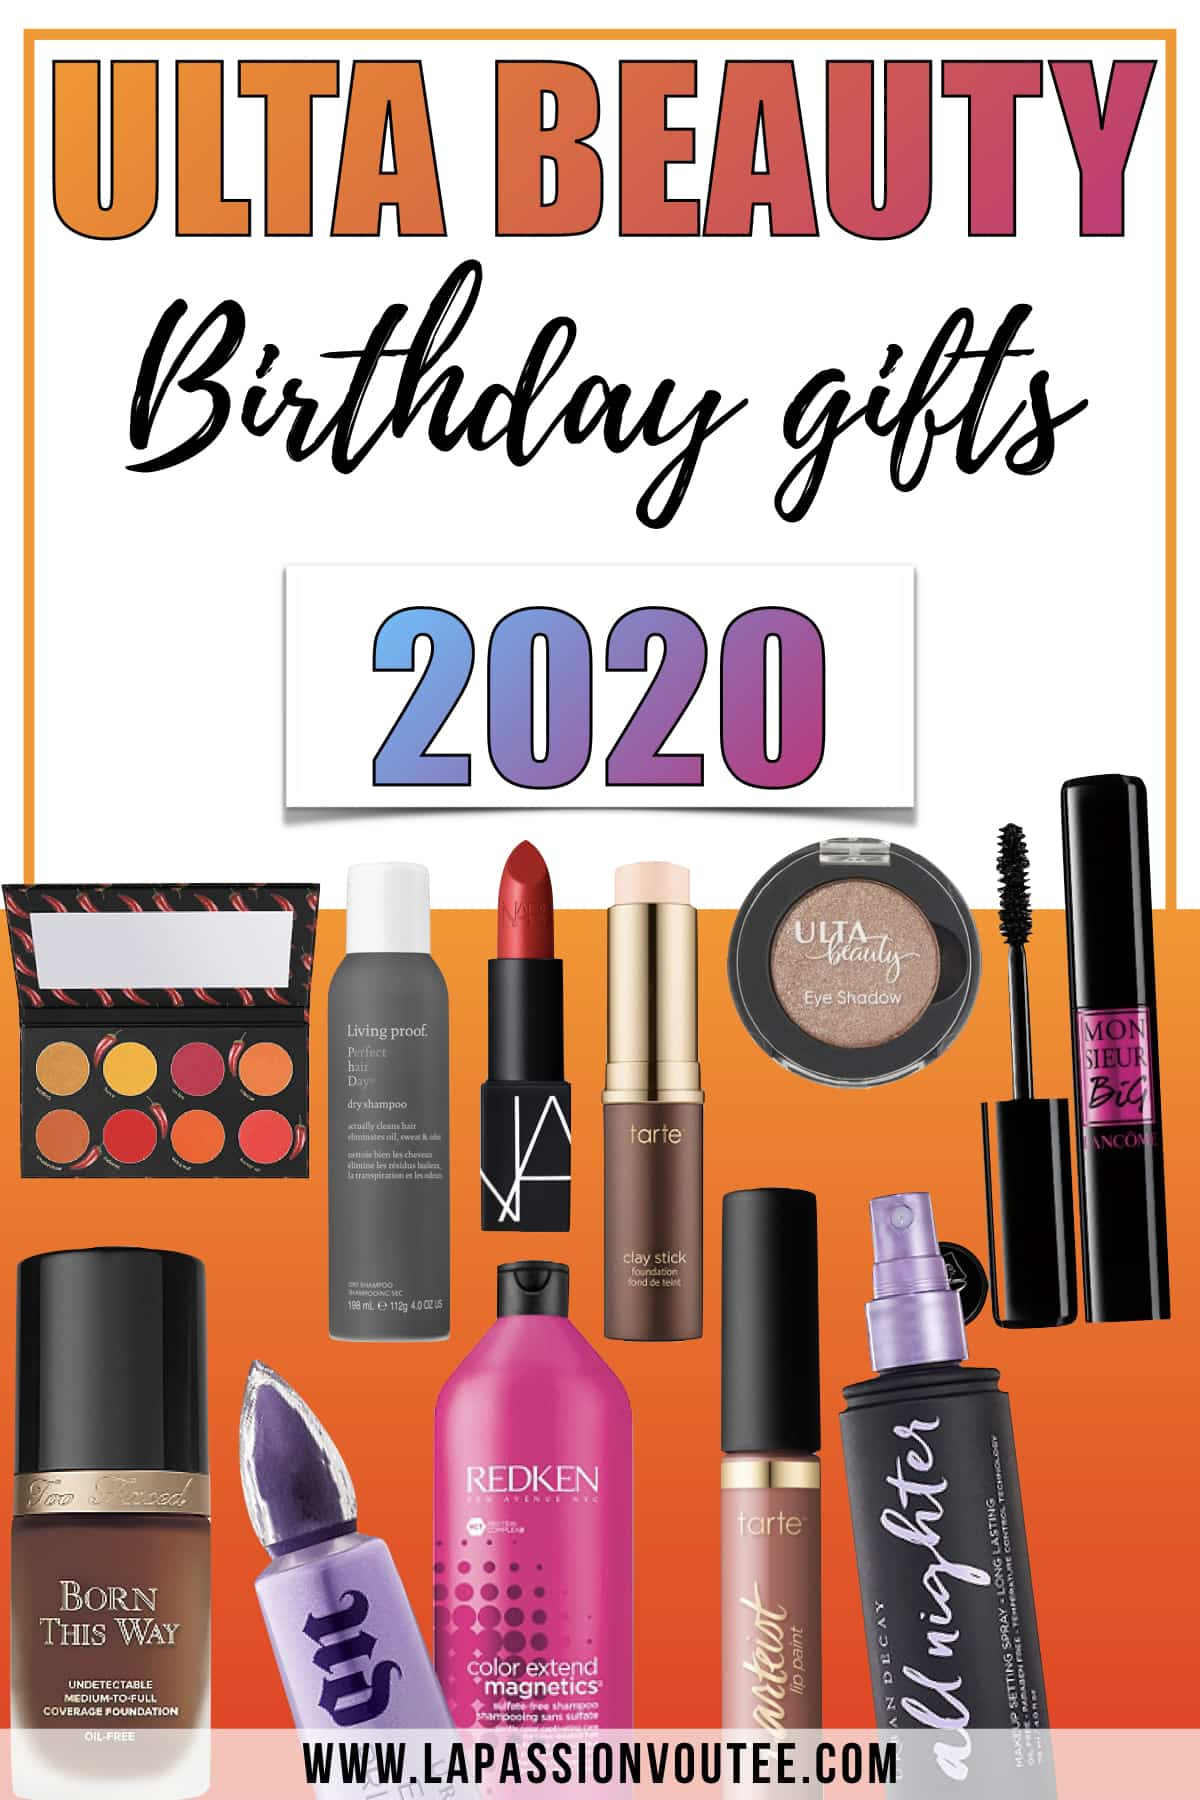 Your ultimate guide to the best Ulta birthday gift of 2020. Know the exact free birthday gifts you will get this year. ulta beauty coupon, ulta birthday gift 2020, ulta birthday gift february 2020, ulta birthday code, ulta birthday box, ulta beauty birthday gift